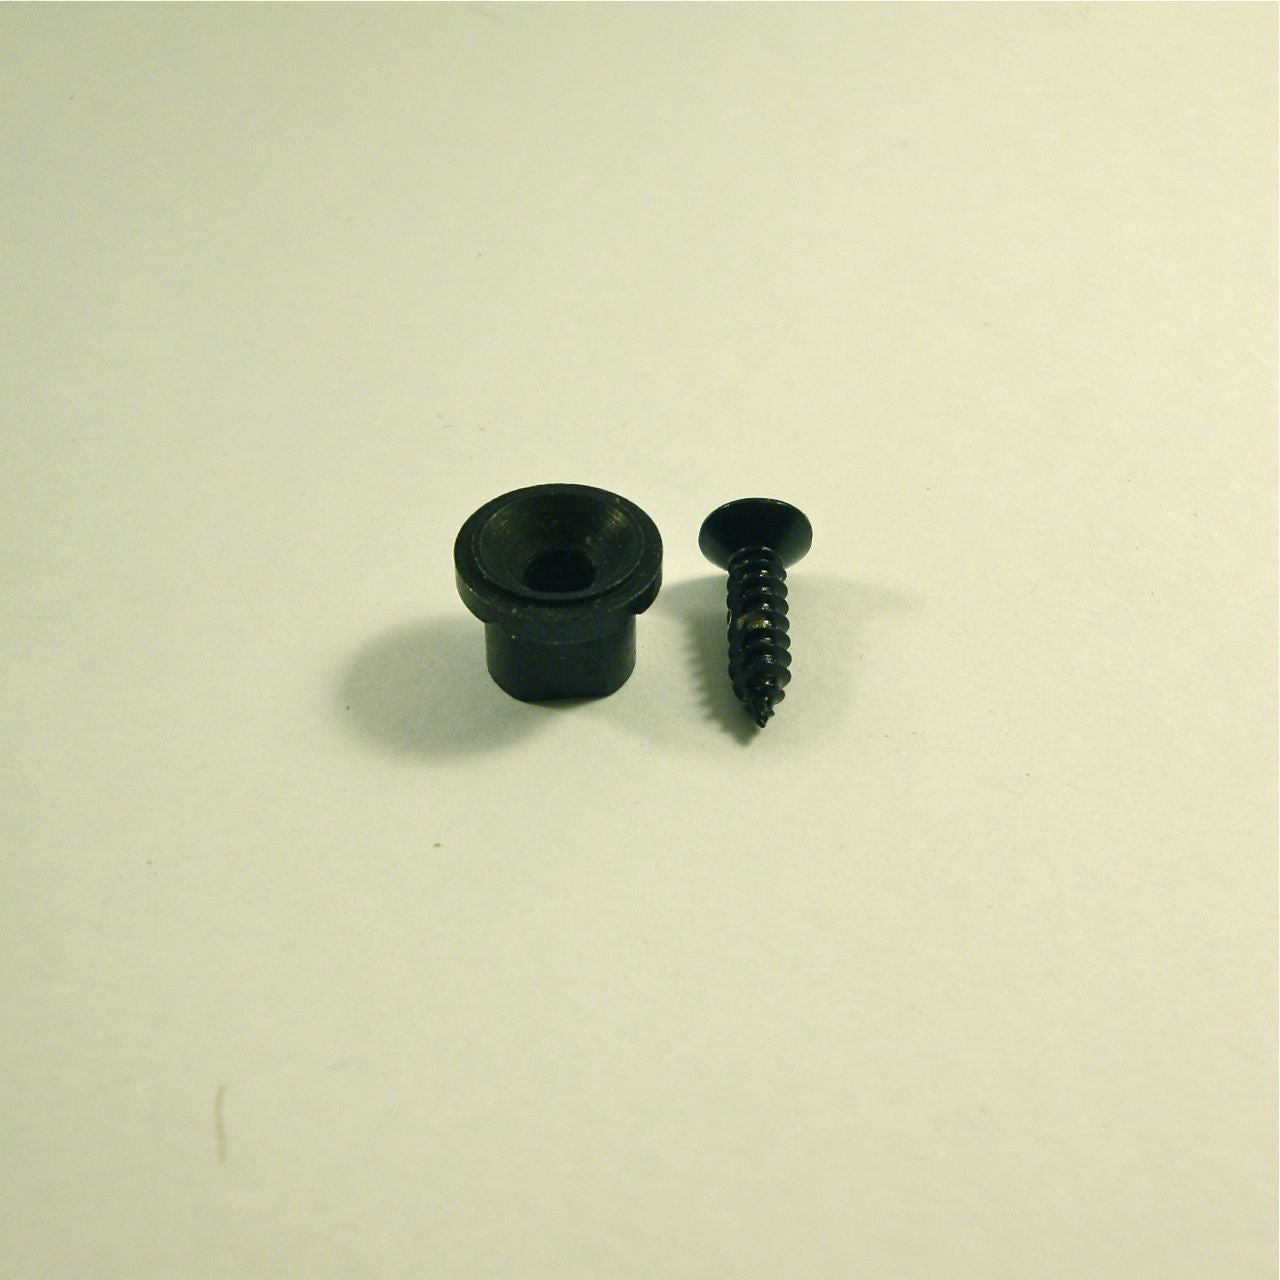 String retainer, button model, with screw